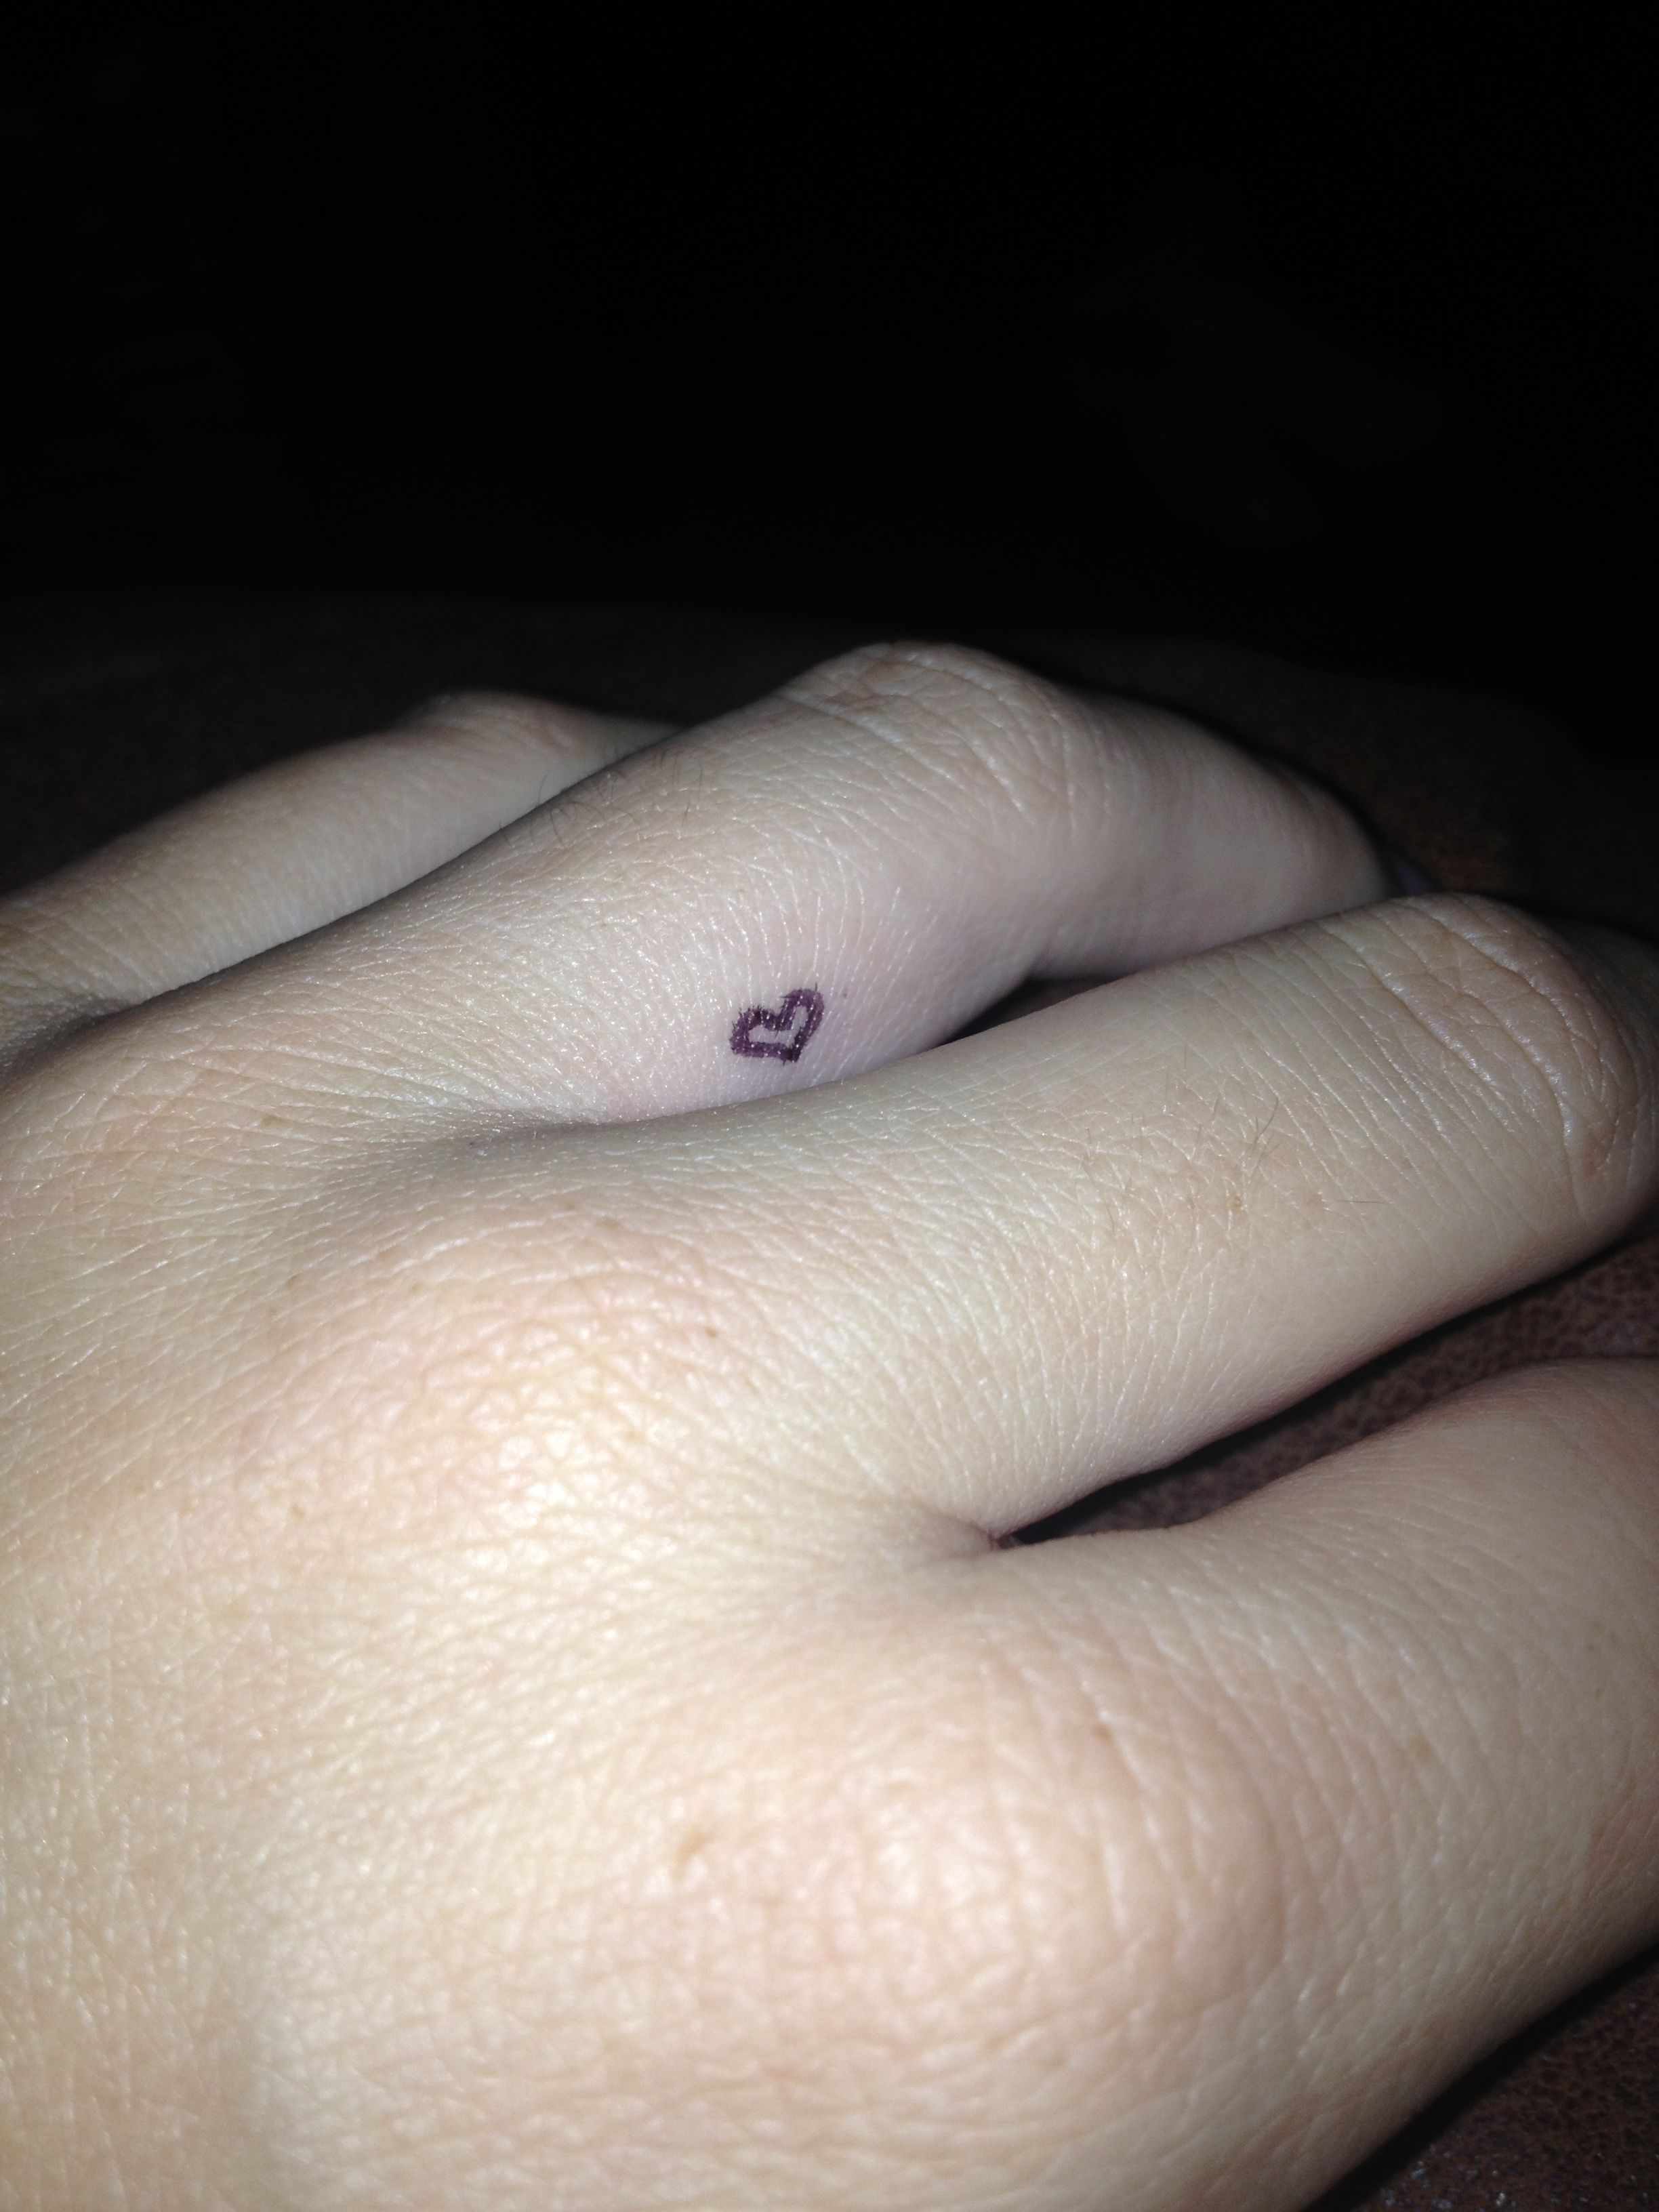 awesome heart idea tattoos tattoo rings frankie wedding inspirational tattooed bands of finger